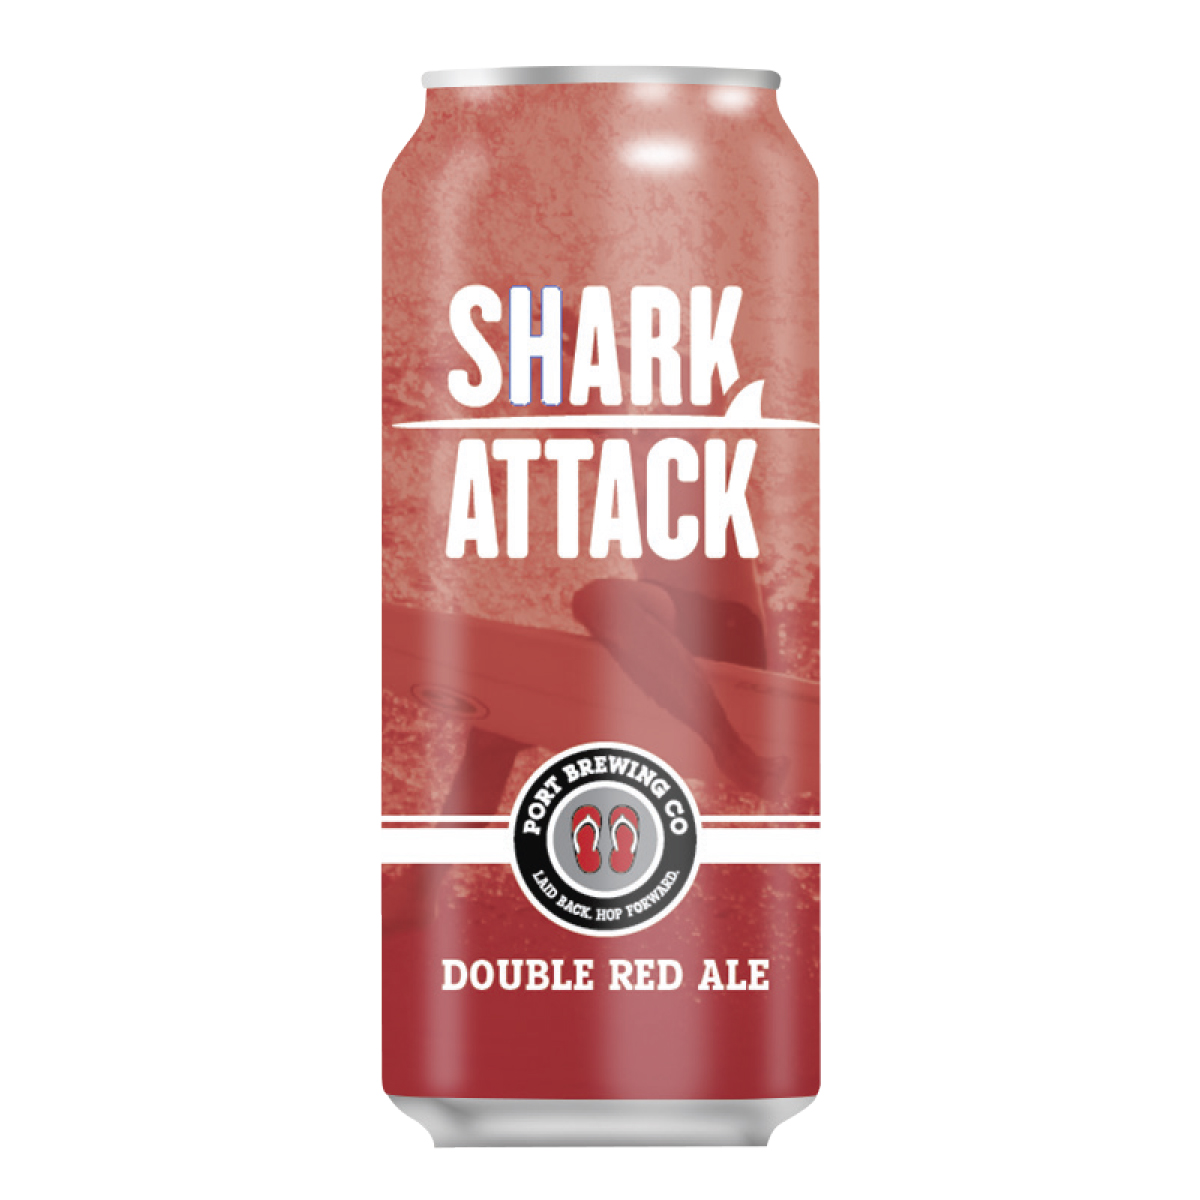 Shark Attack Double Red Ale - Four- Pack MAIN